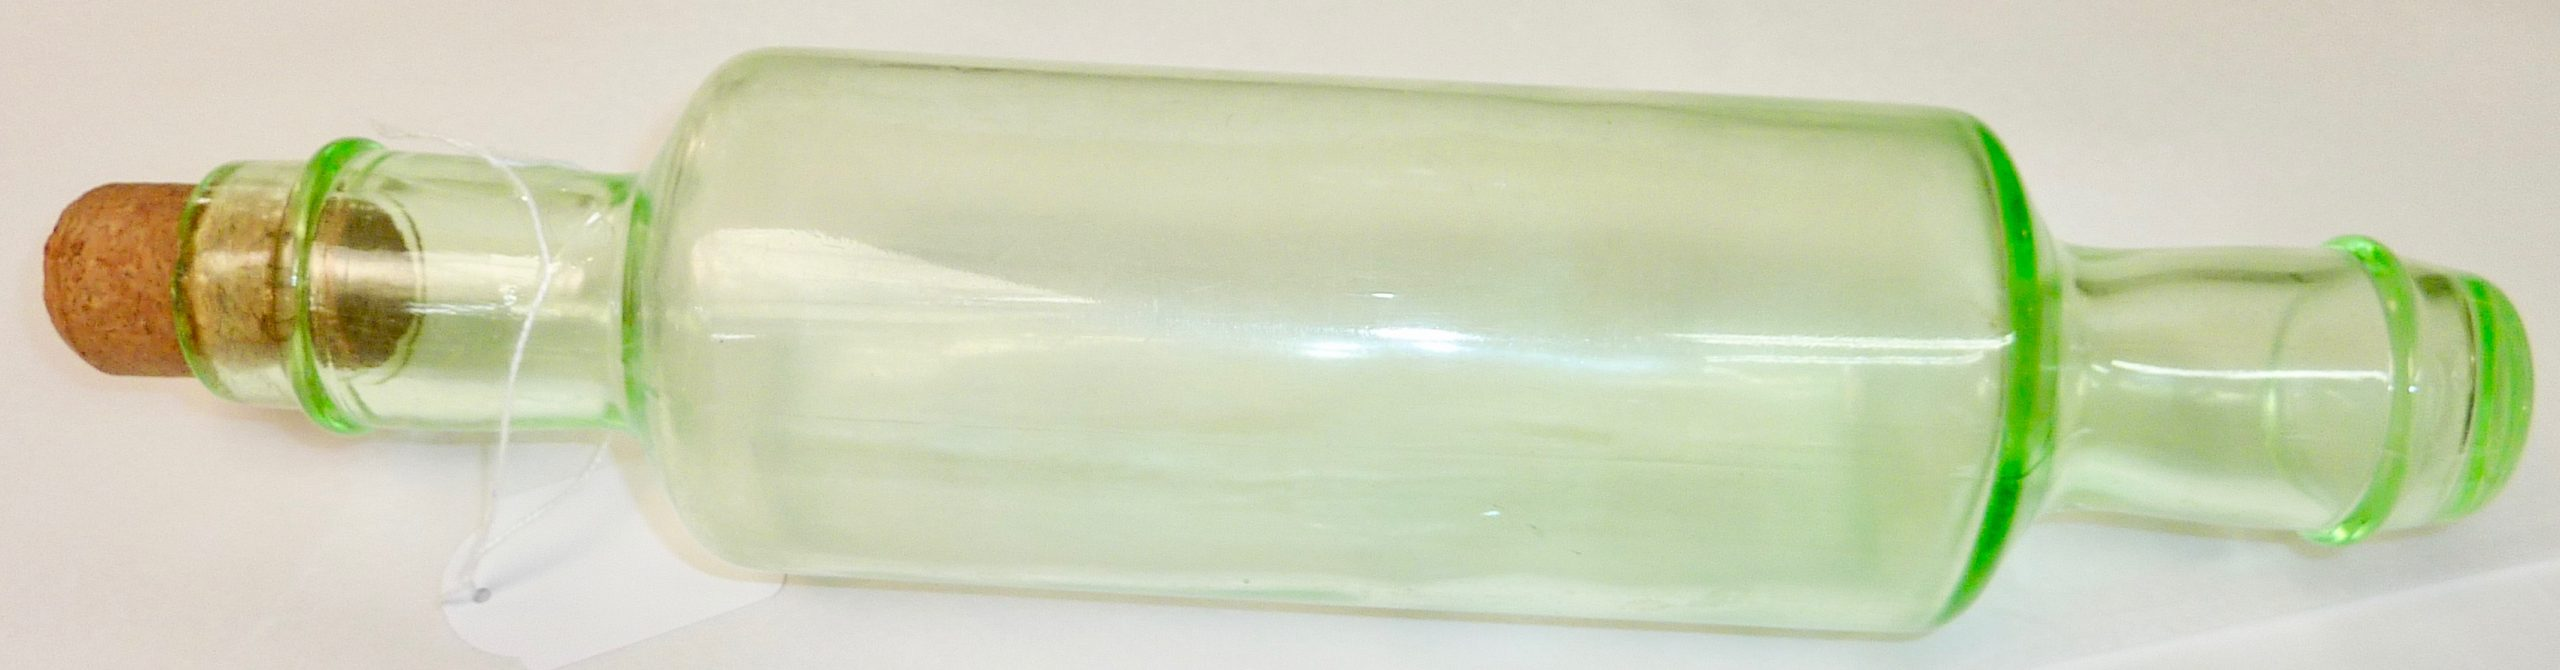 Depression glass rolling pin with cork stopper